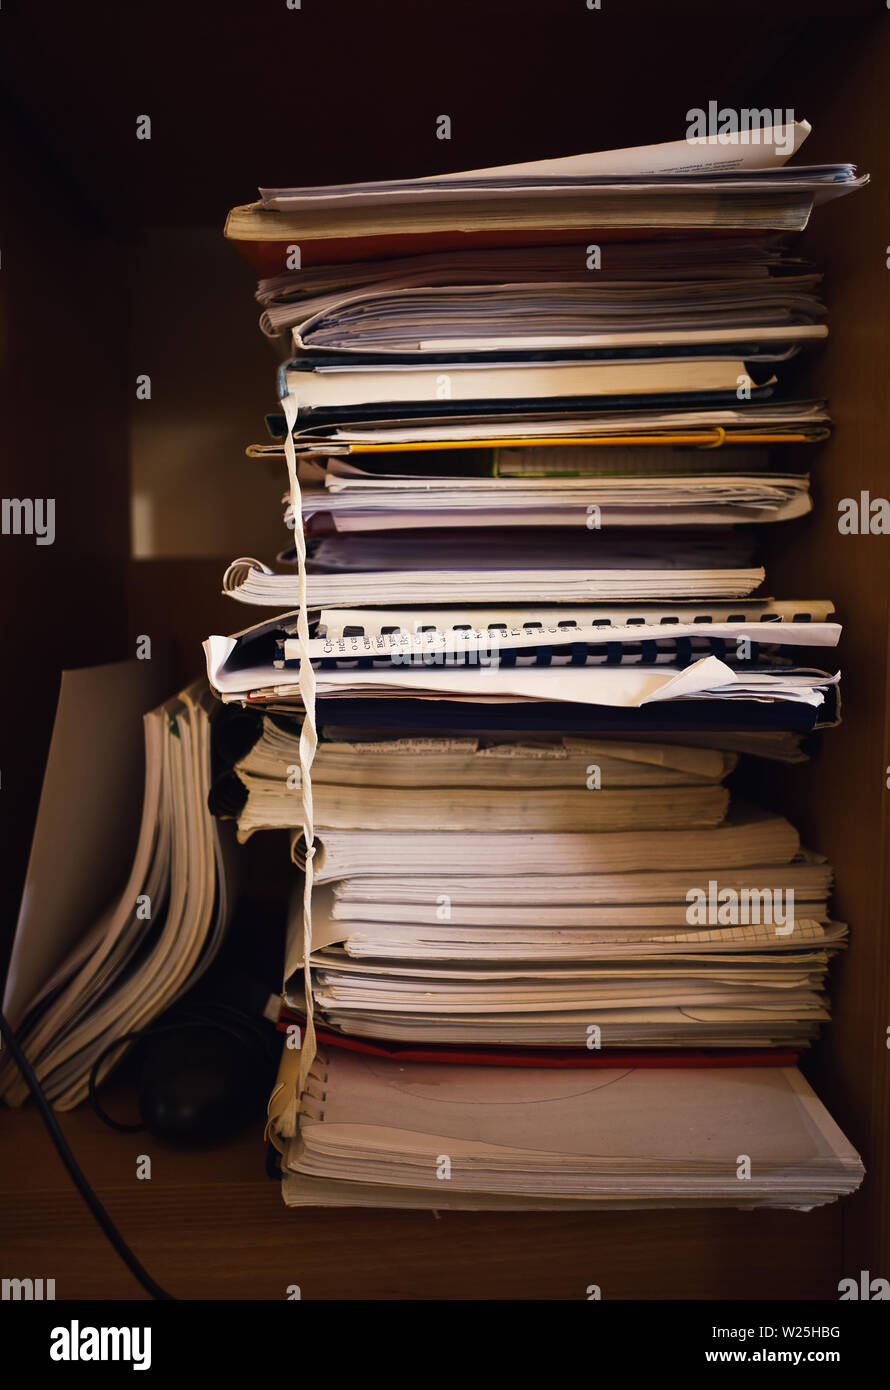 Home interior details, a lot of old notes and books in wooden closet. - Stock Image